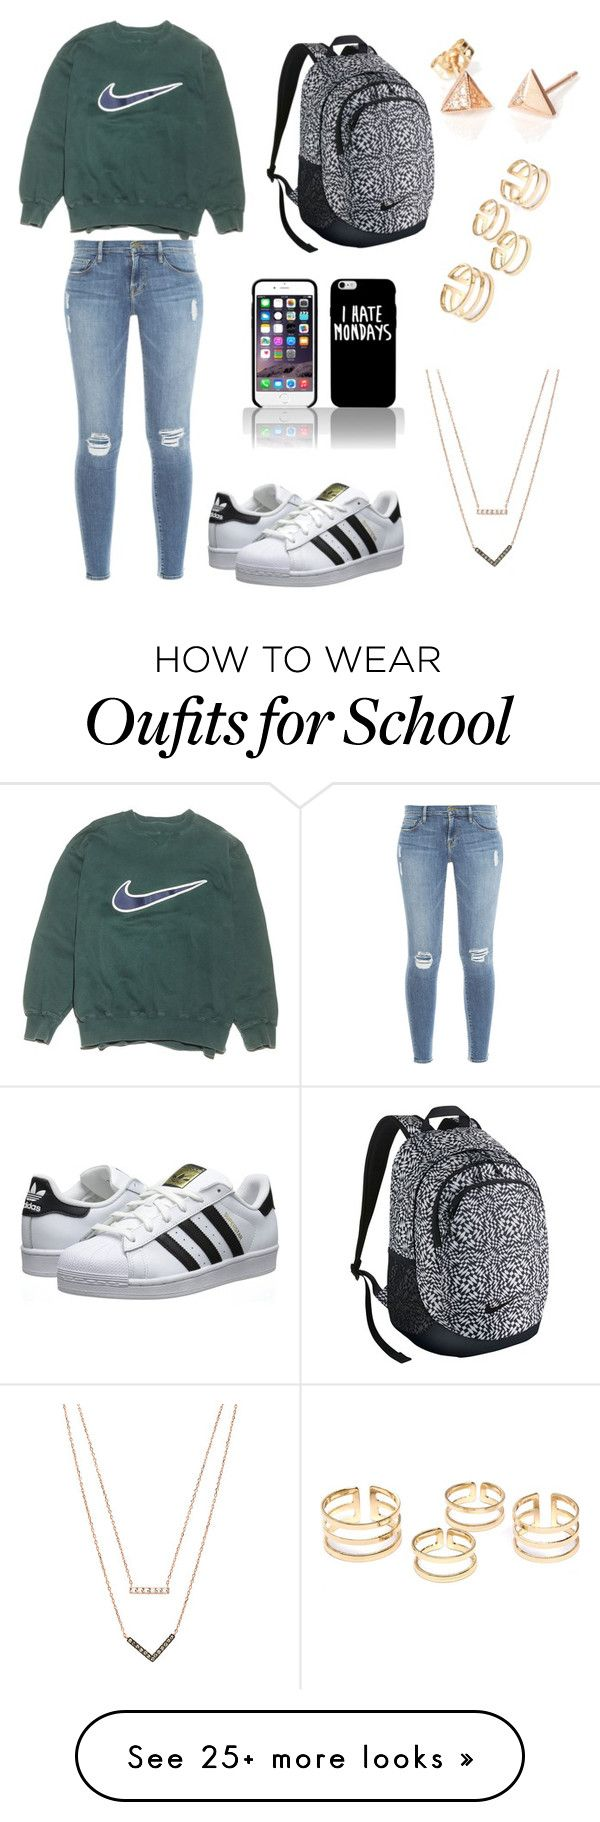 """Casual school days"" by chloebecker on Polyvore featuring NIKE, Frame Denim, adidas Originals and Michael Kors"